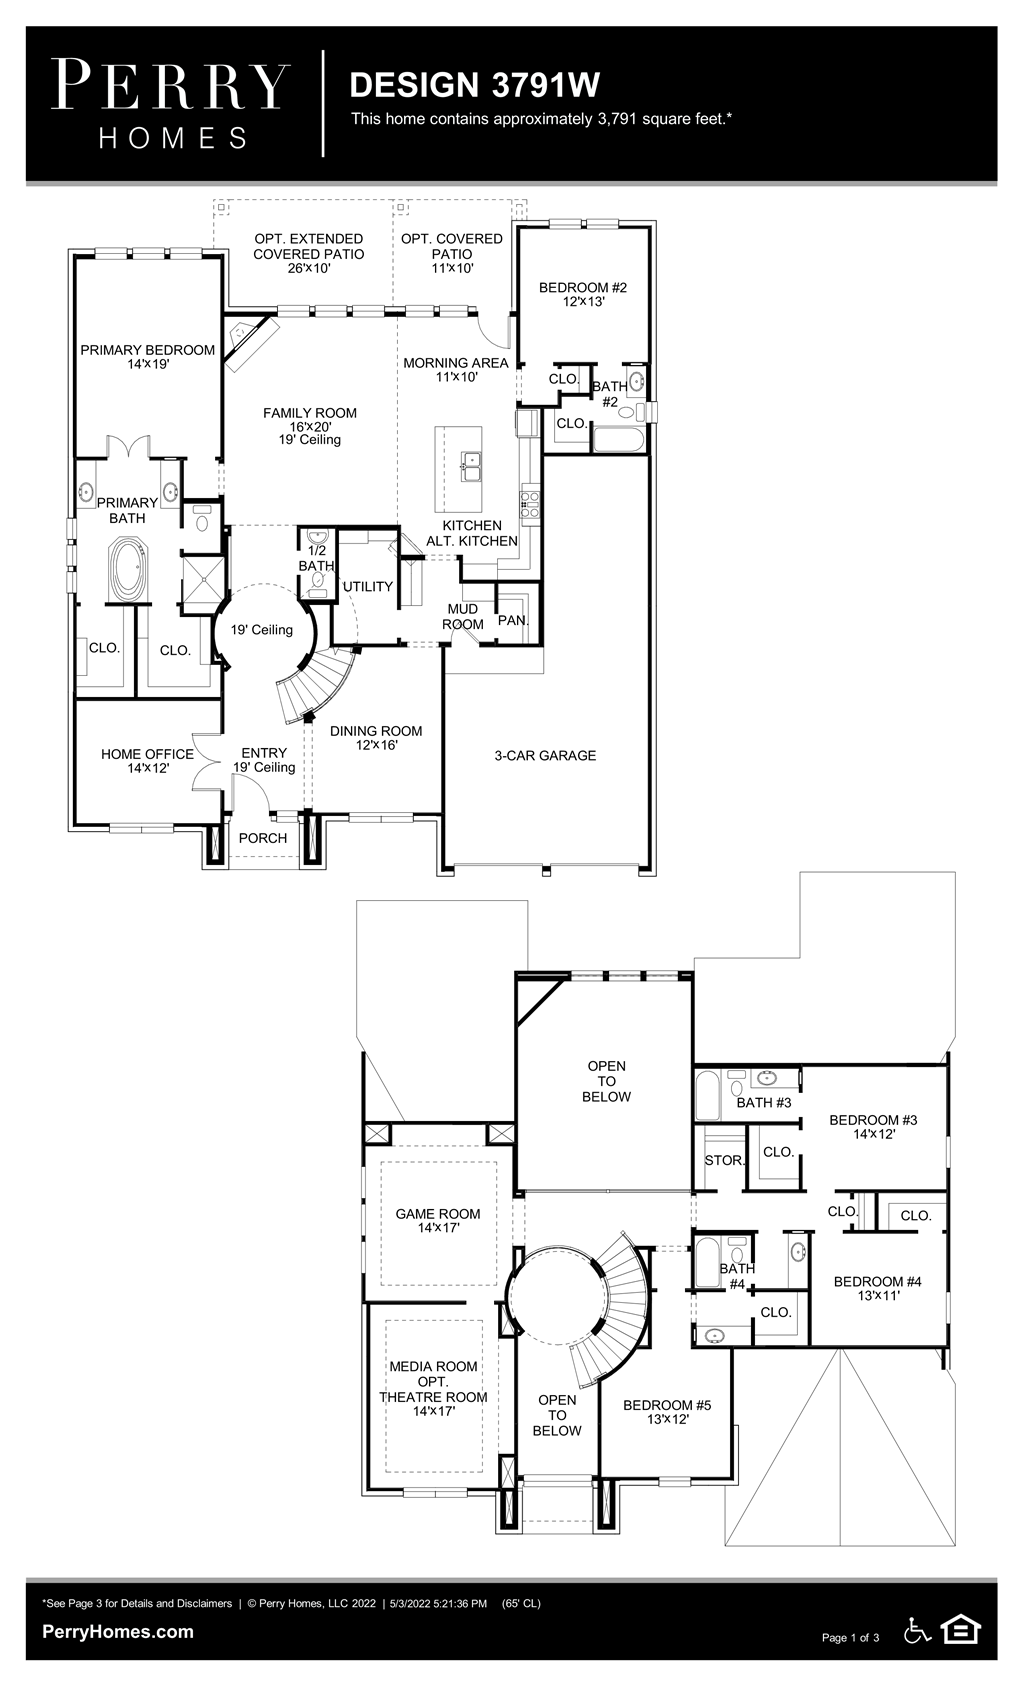 Floor Plan for 3791W